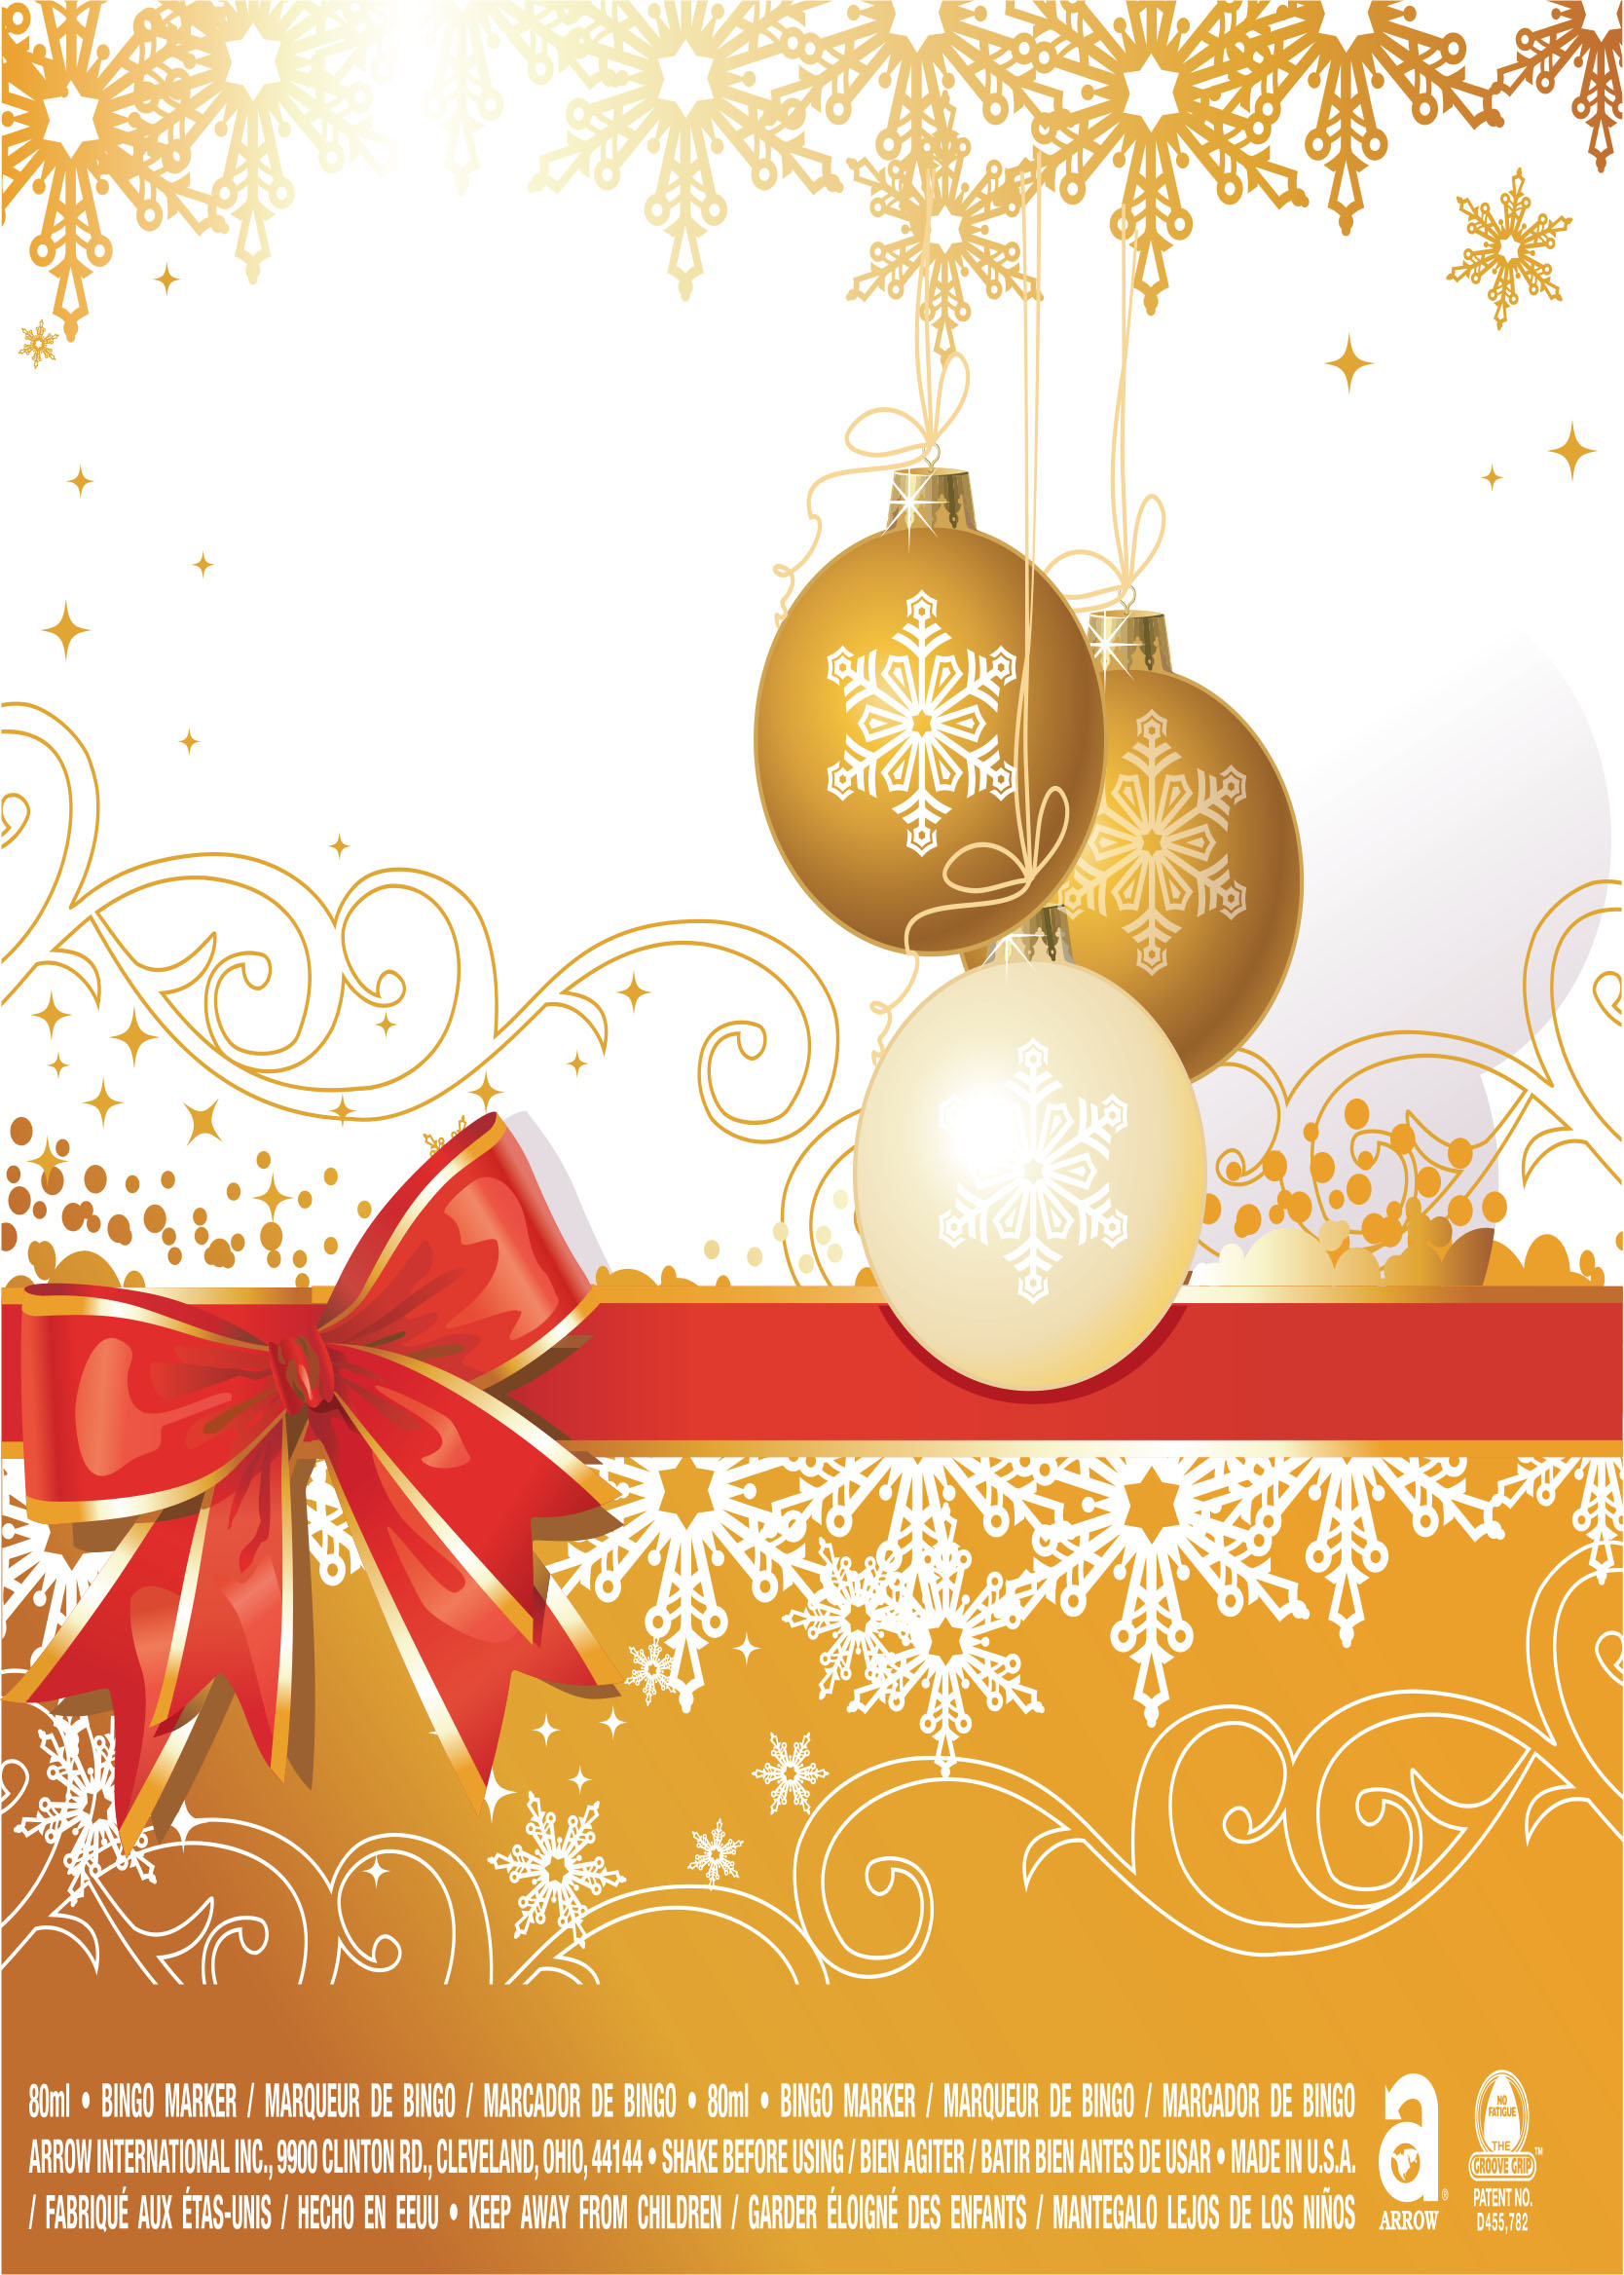 Merry Christmas / Gold Ornaments and Ribbon